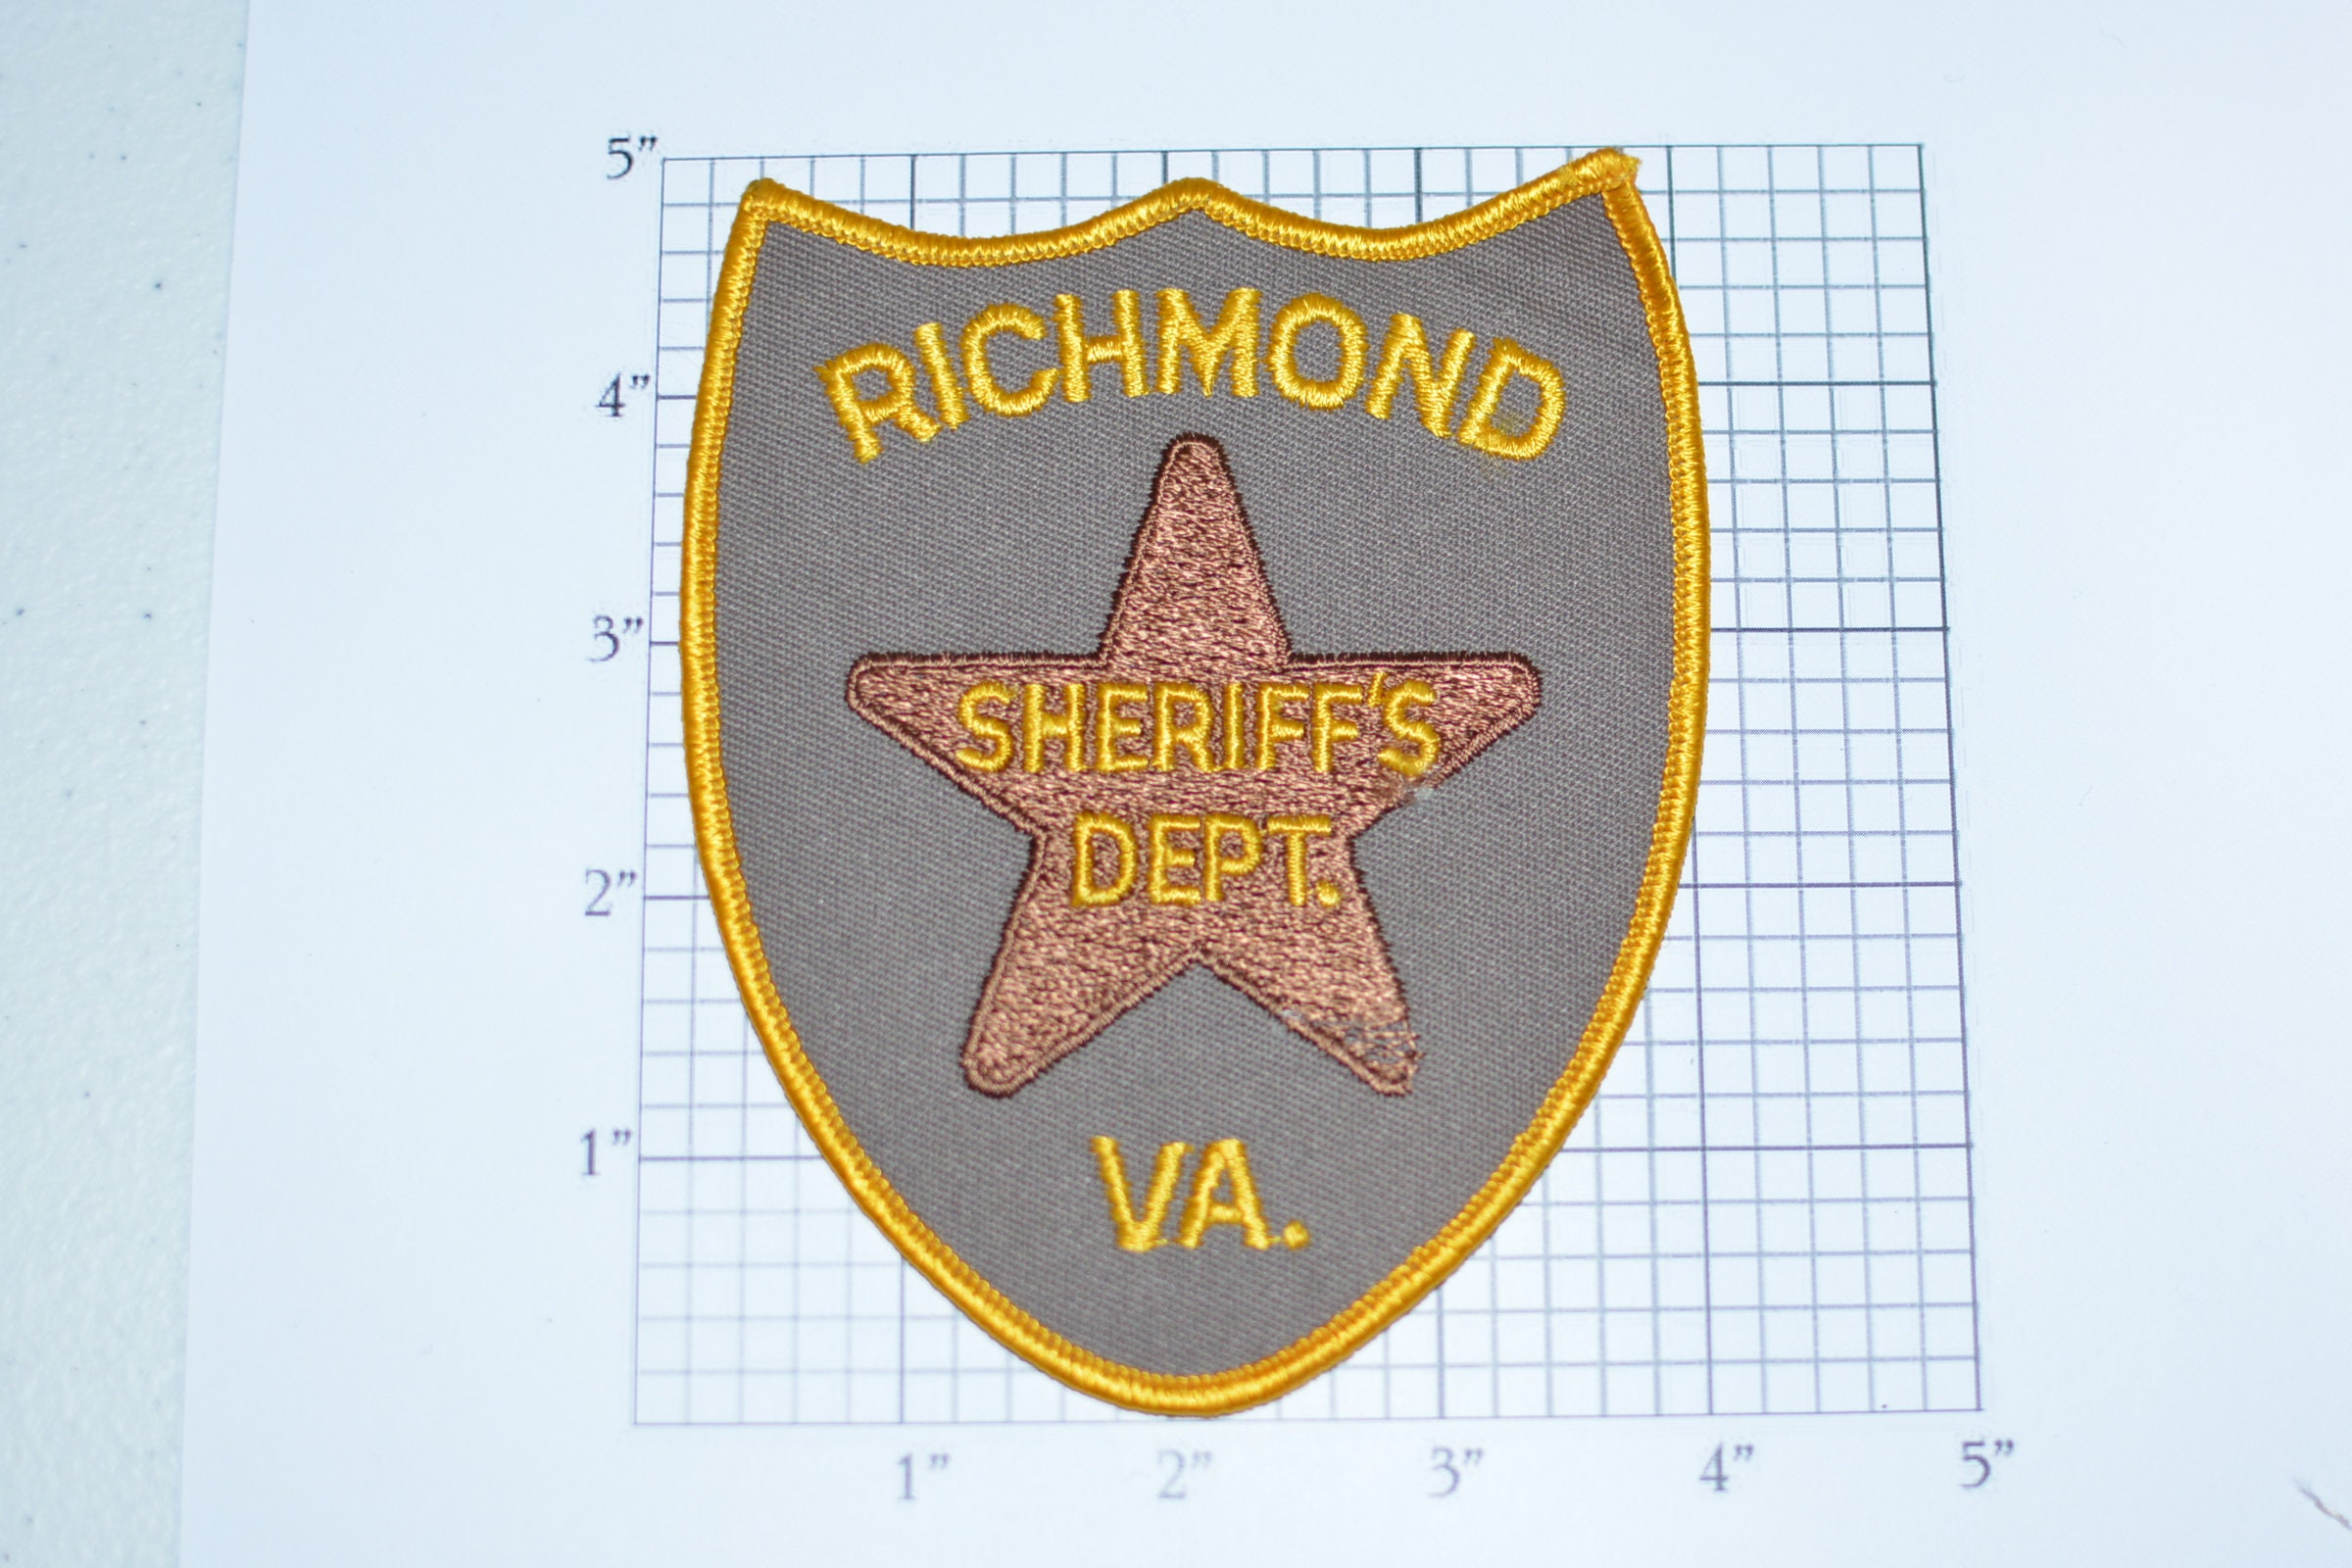 Richmond virginia sheriff s dept sew on embroidered patch